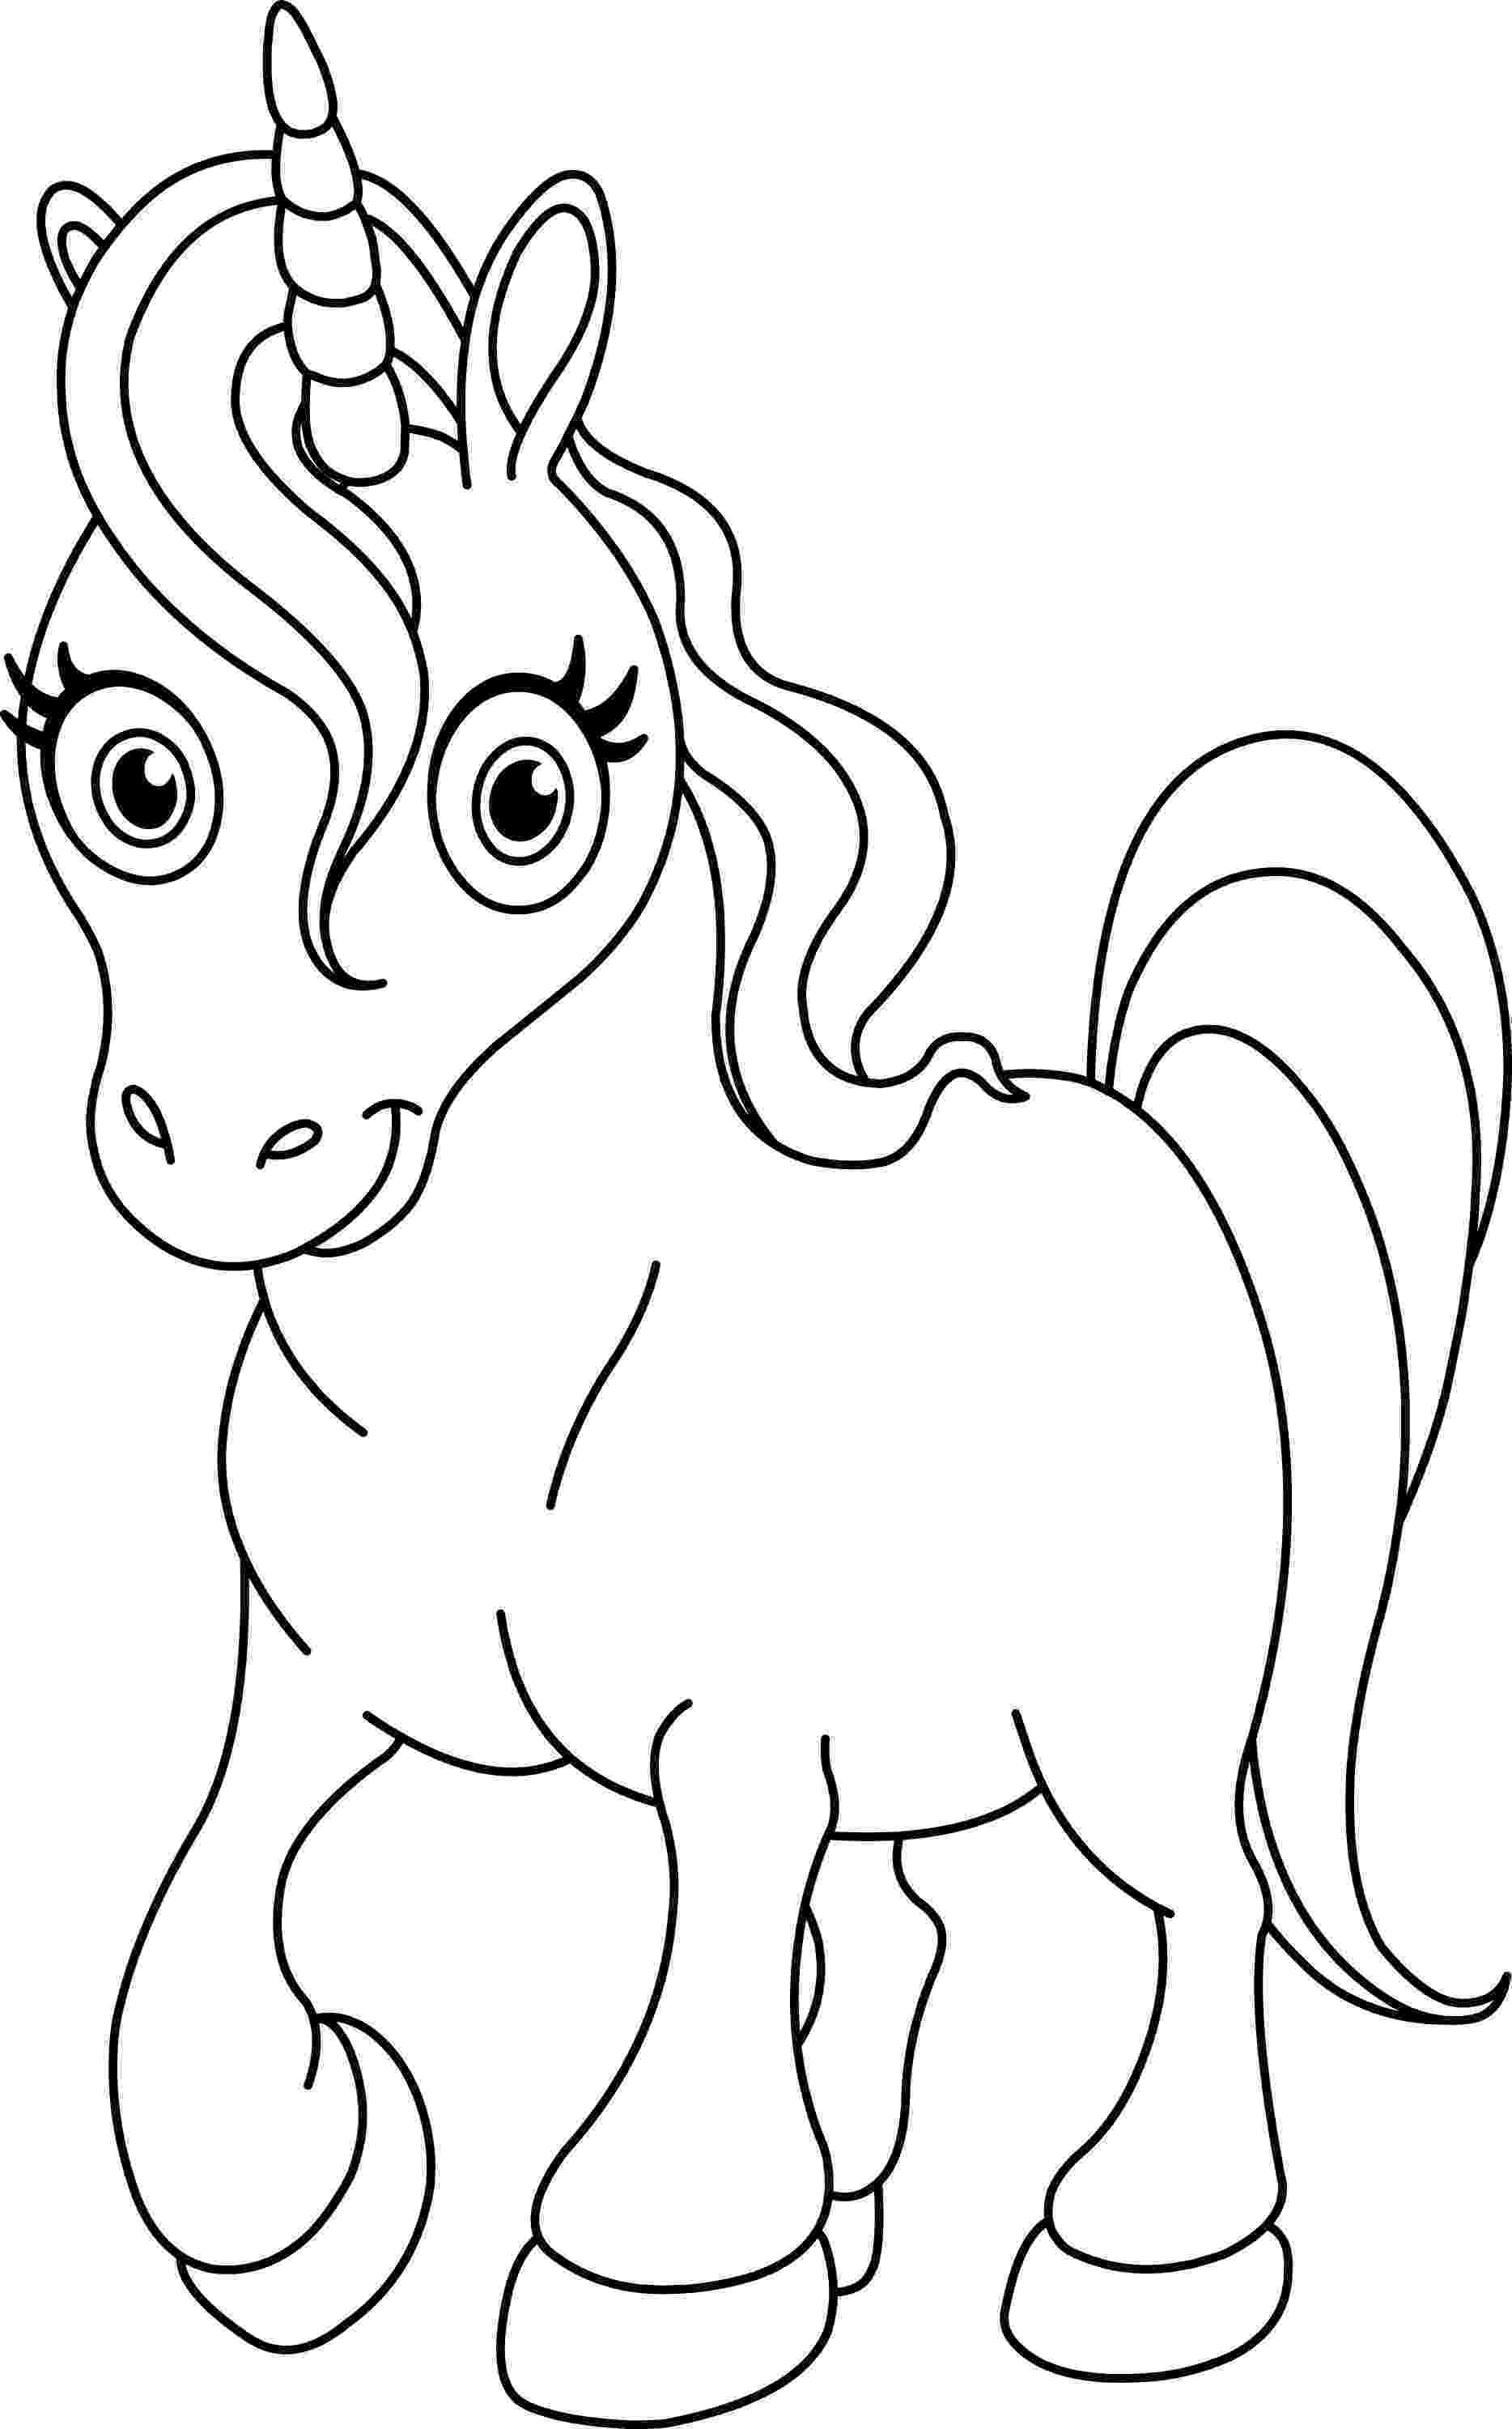 a coloring sheet little einsteins coloring pages coloring a sheet